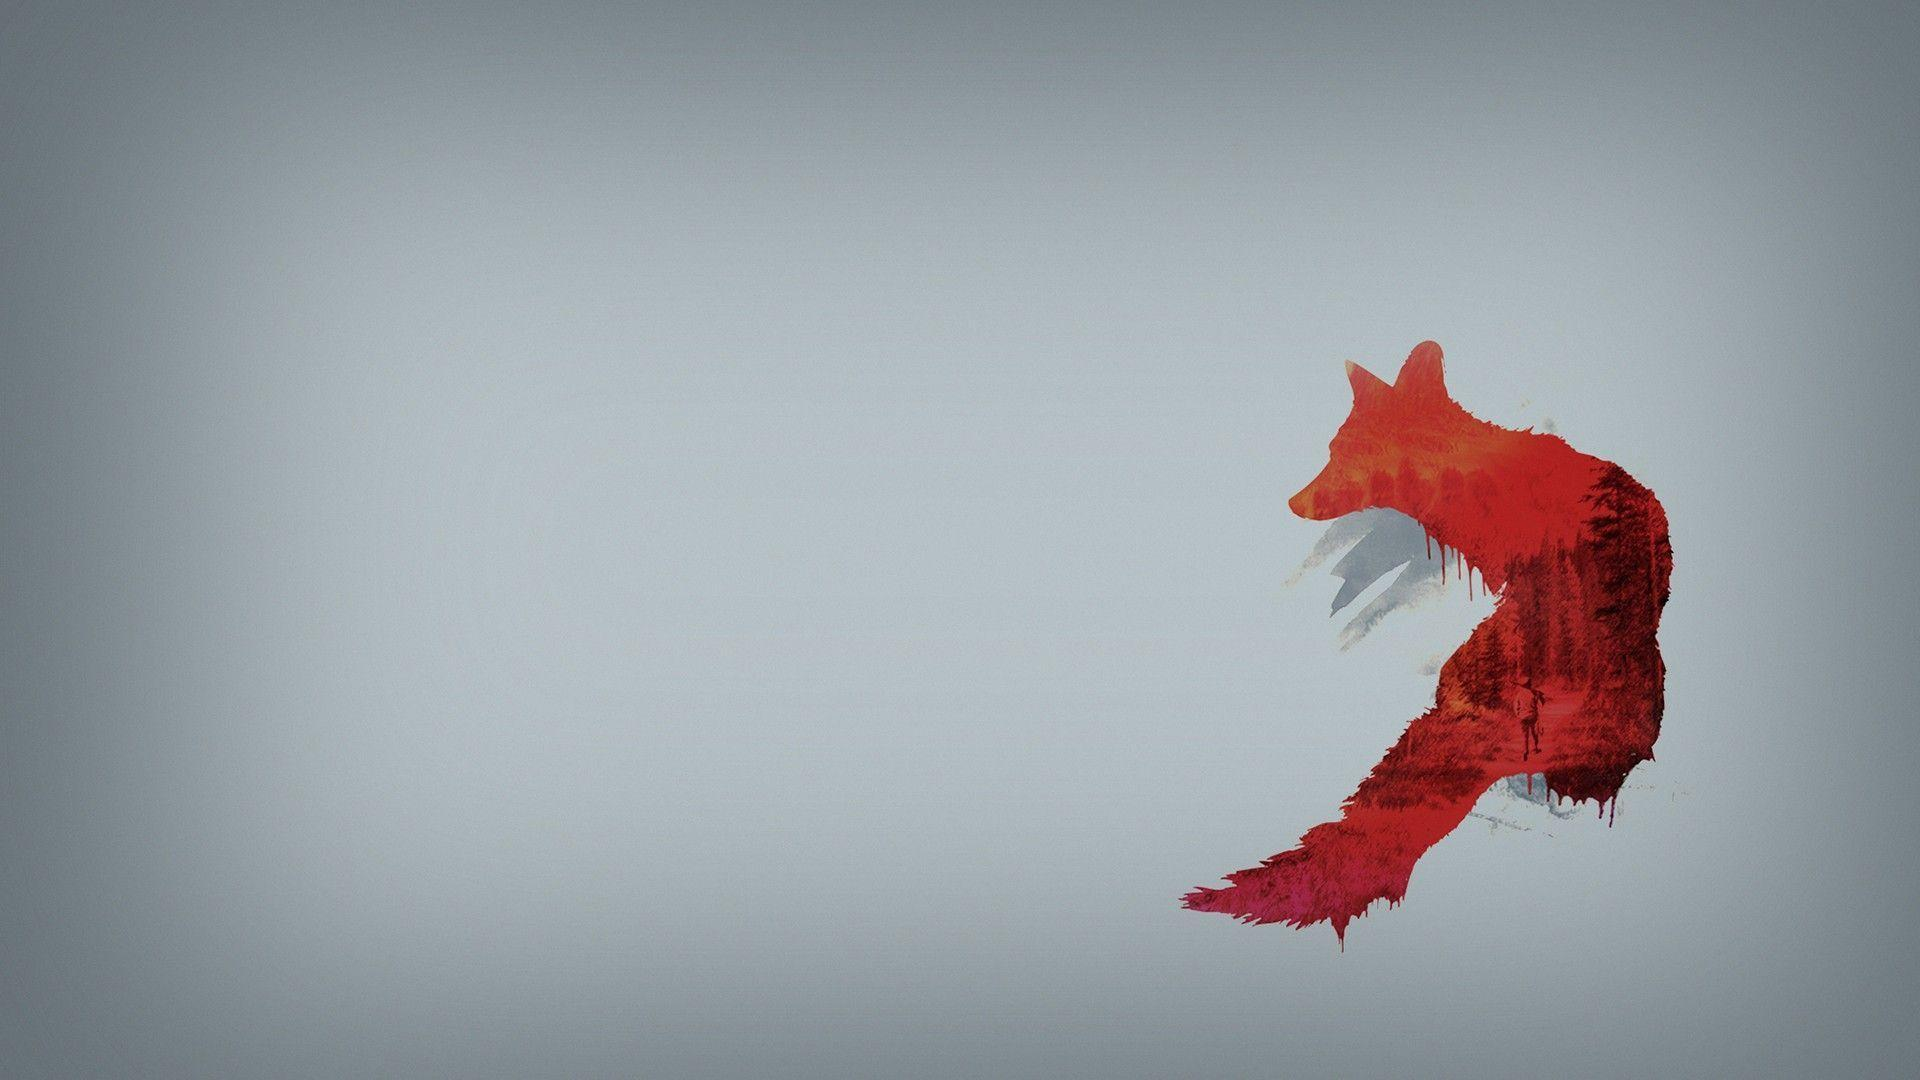 red fox hd wallpapers - photo #18